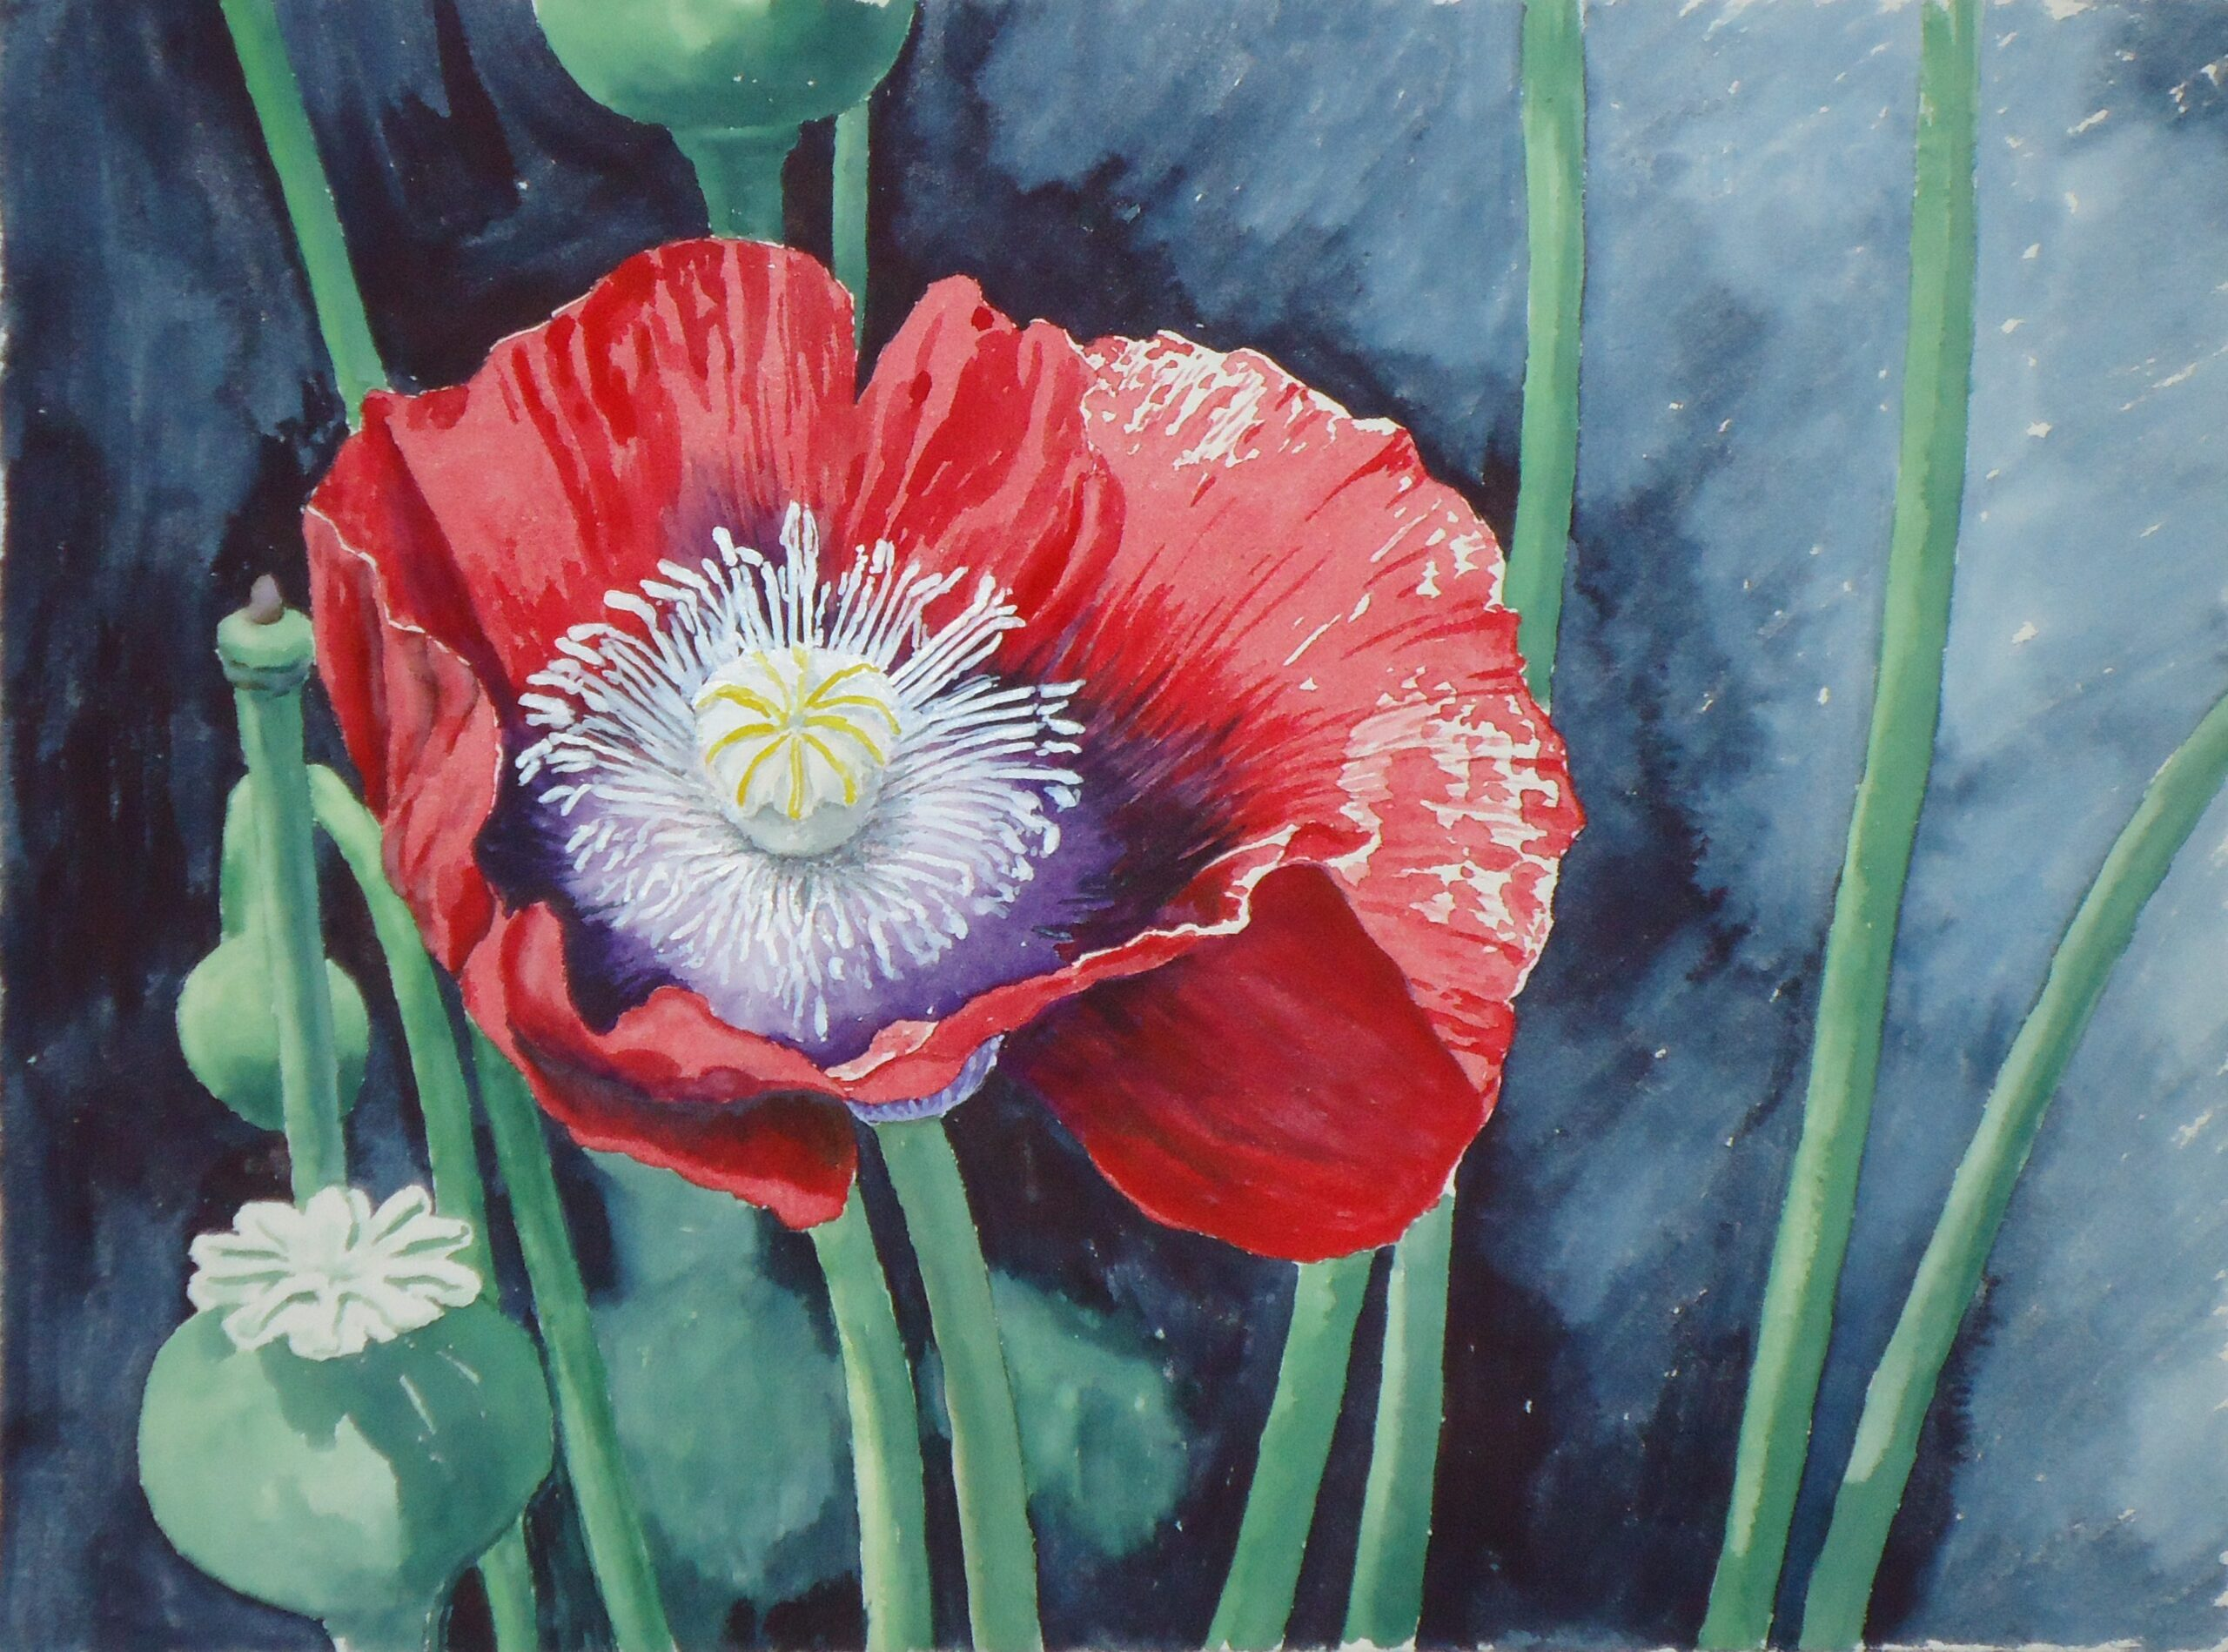 A water colour painting of a red poppy by Keith Cains.